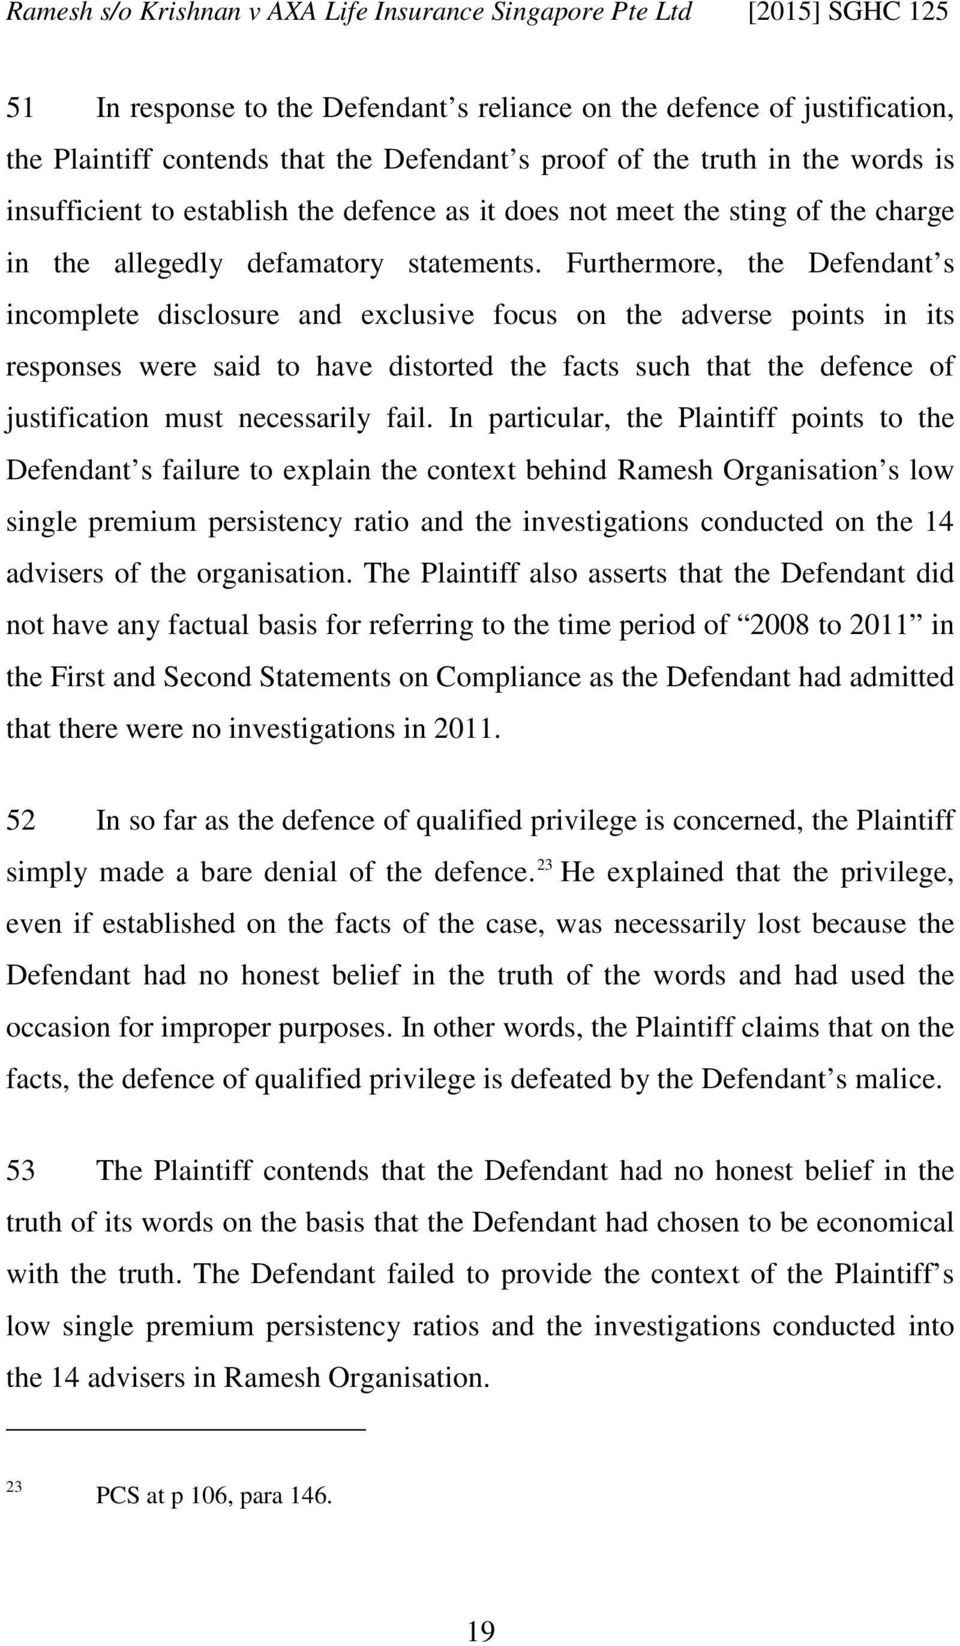 Furthermore, the Defendant s incomplete disclosure and exclusive focus on the adverse points in its responses were said to have distorted the facts such that the defence of justification must